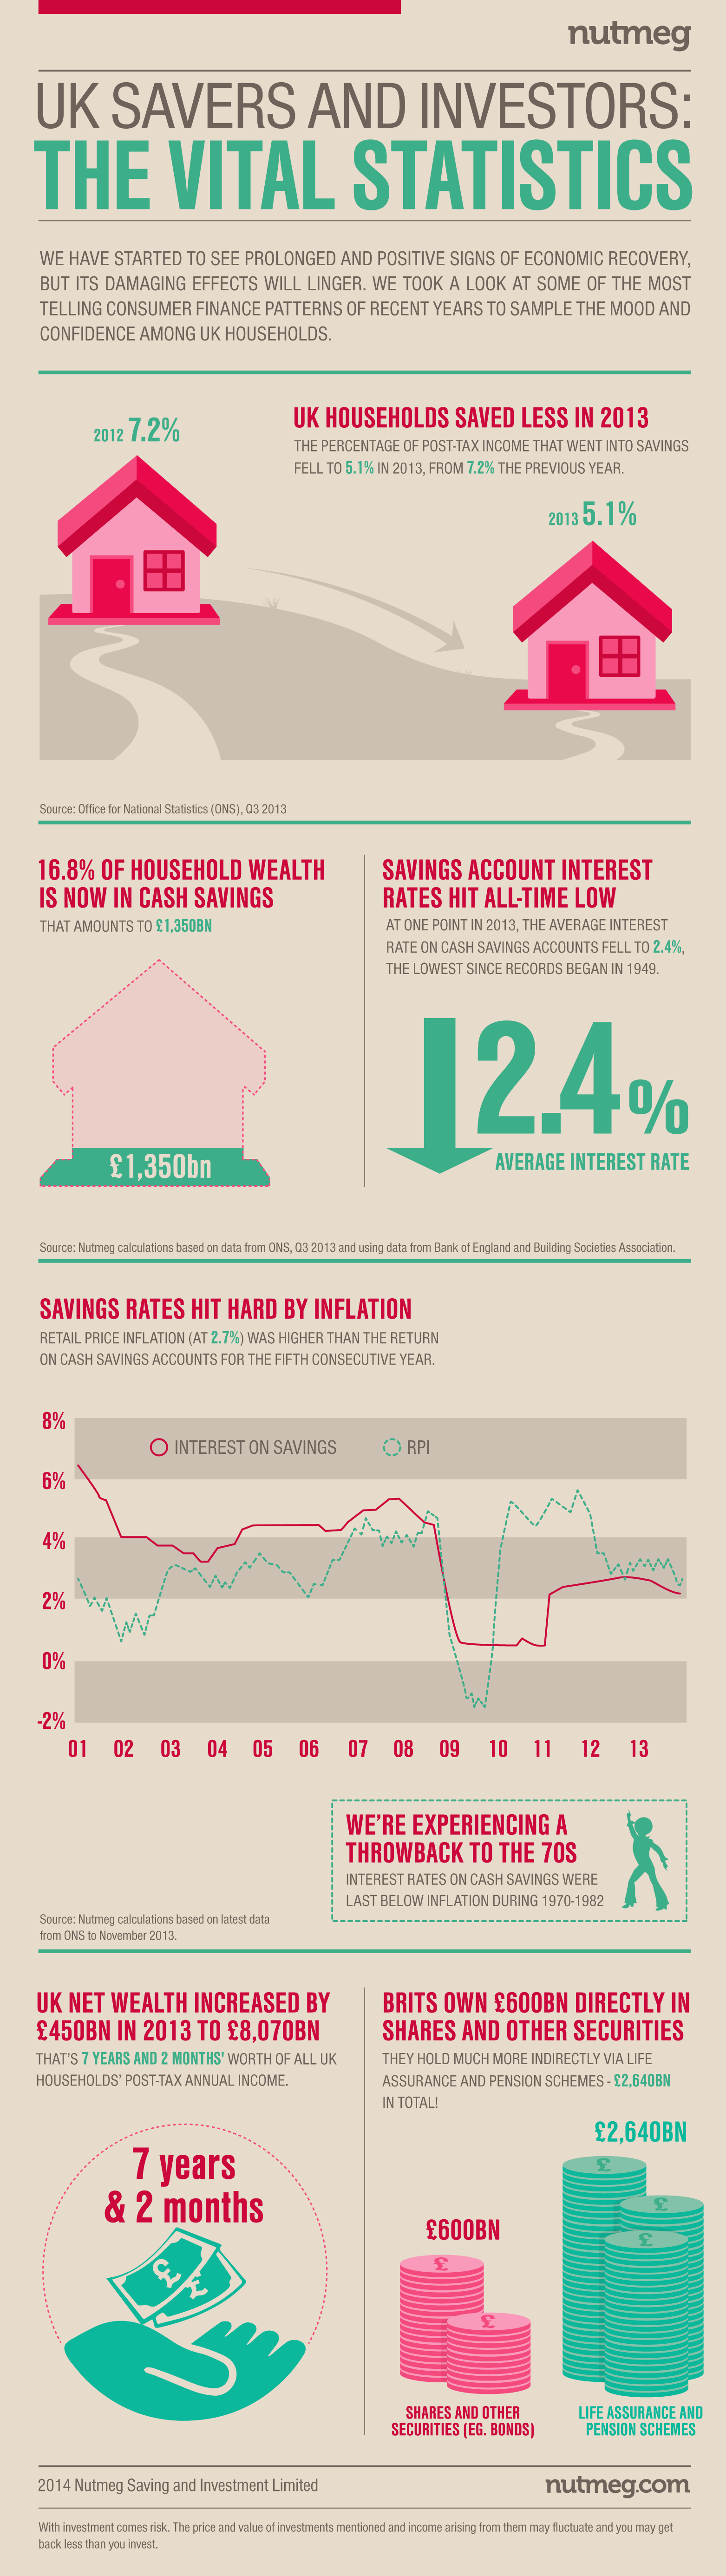 UK savers and investors - the facts